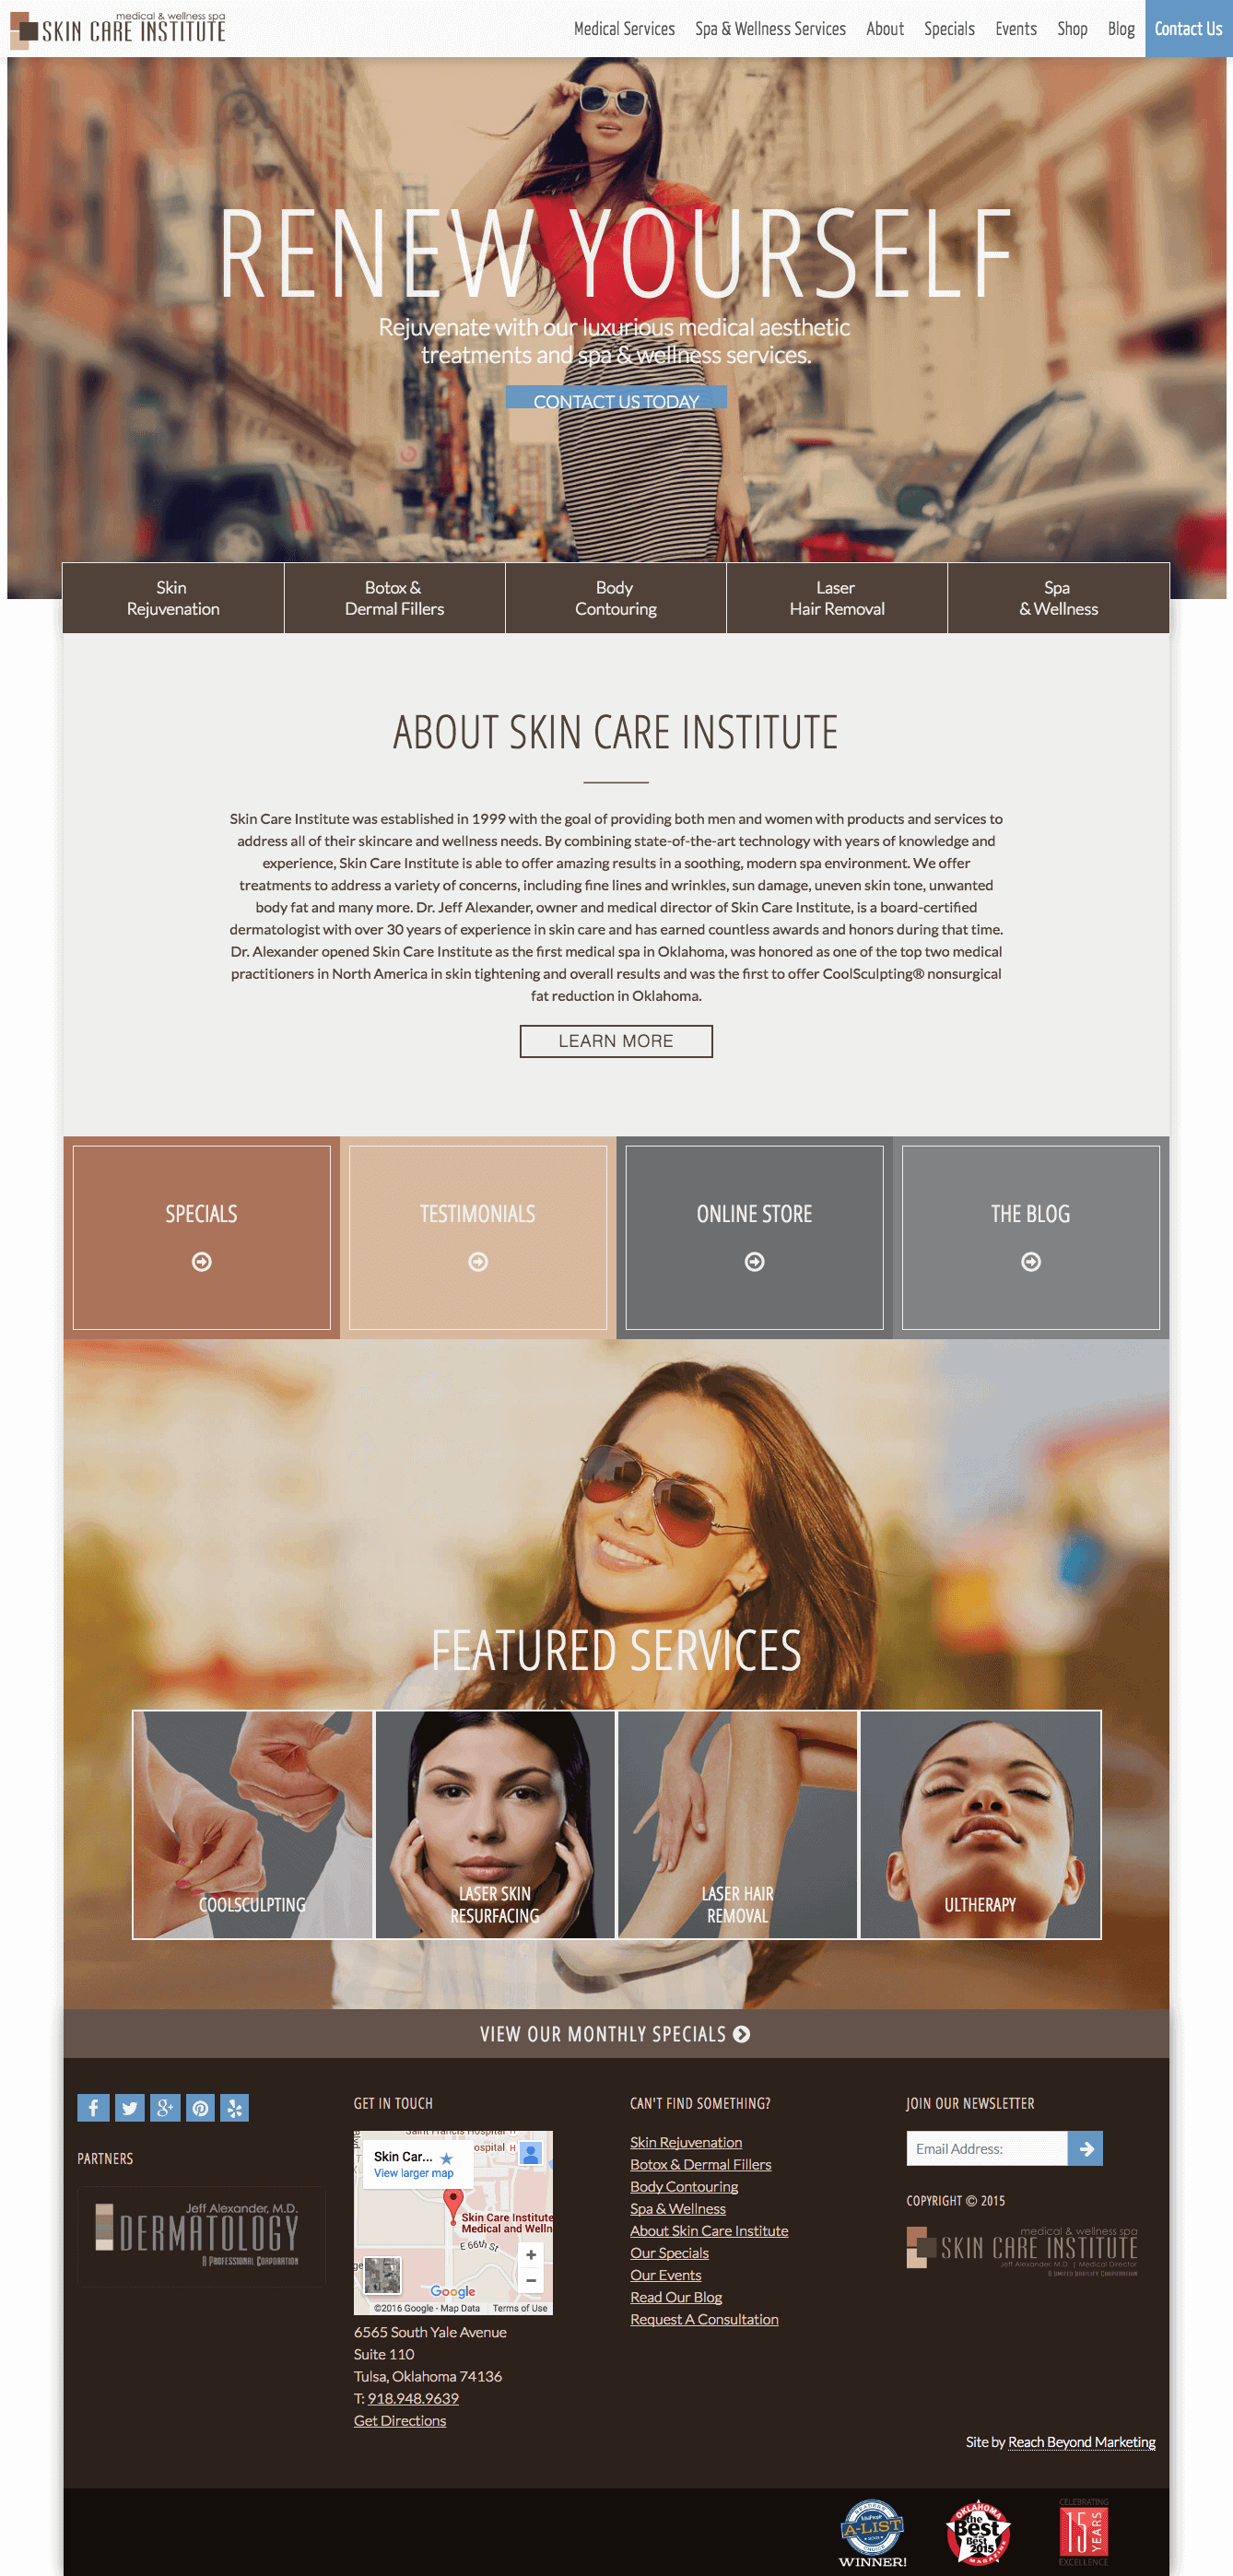 Skin Care Institute, collaborative website design by the Lead Web Developer and the Creative Director at Reach Beyond Marketing. Built by Katie Peterson, Web Designer/Developer at Reach Beyond Marketing